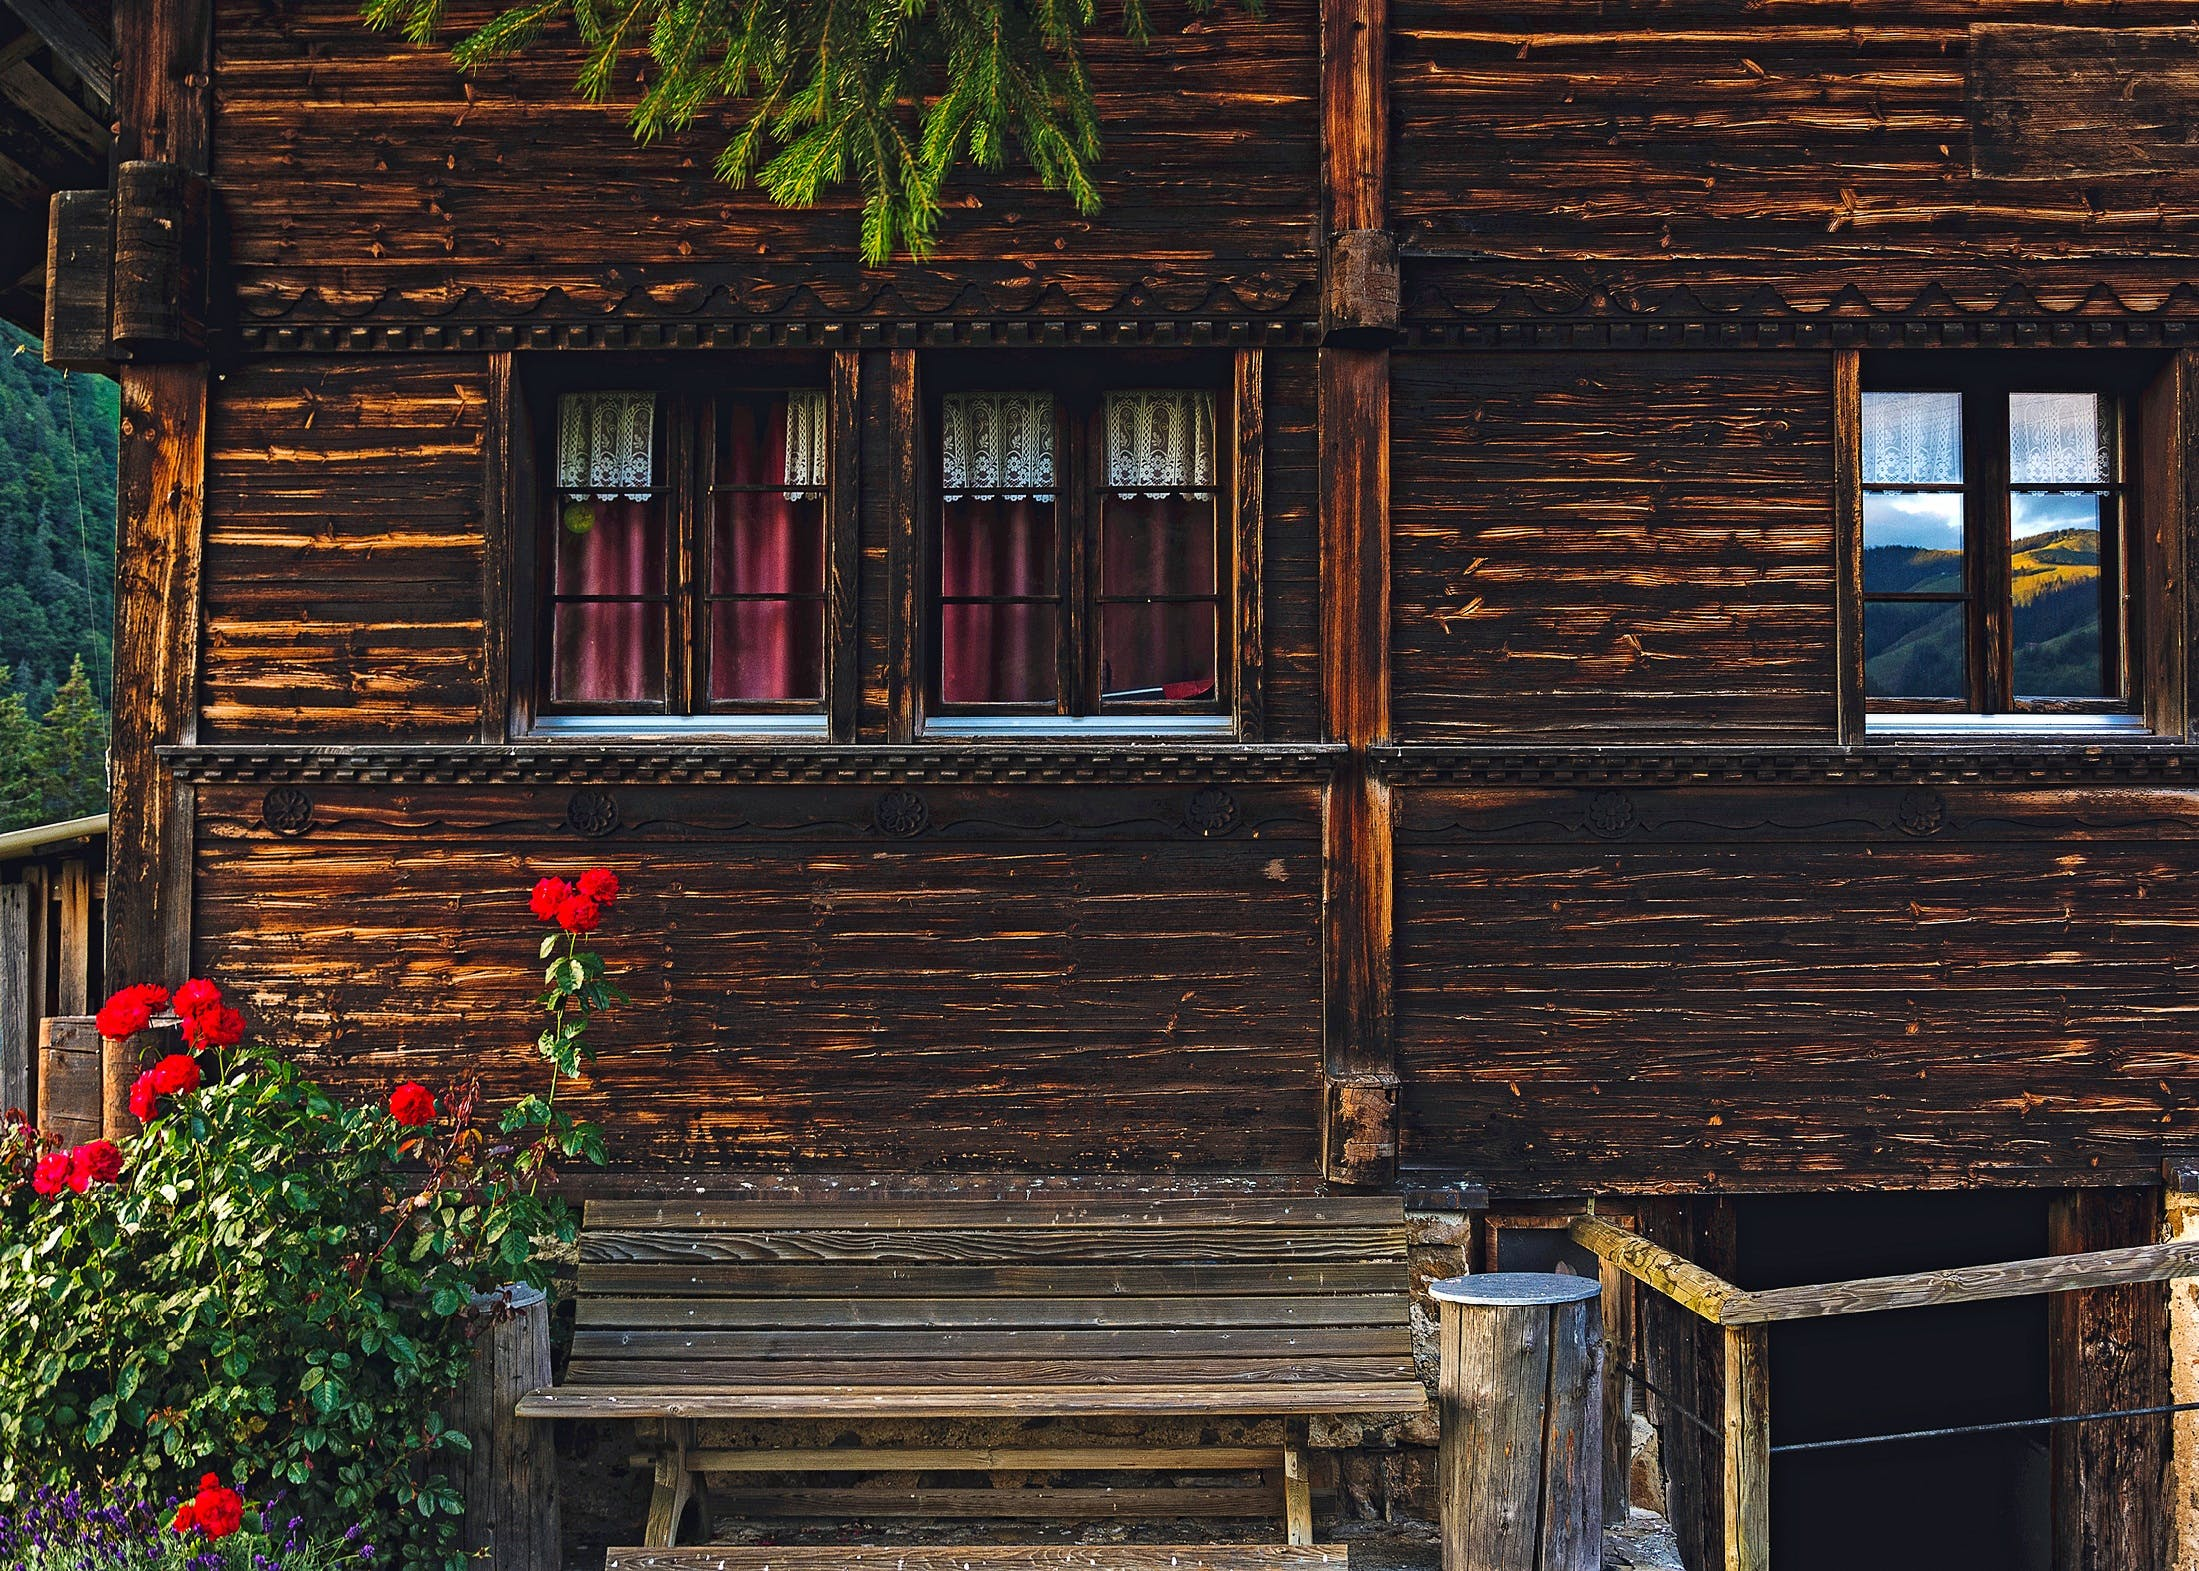 Red Petaled Flower by Porch of Brown Wooden House